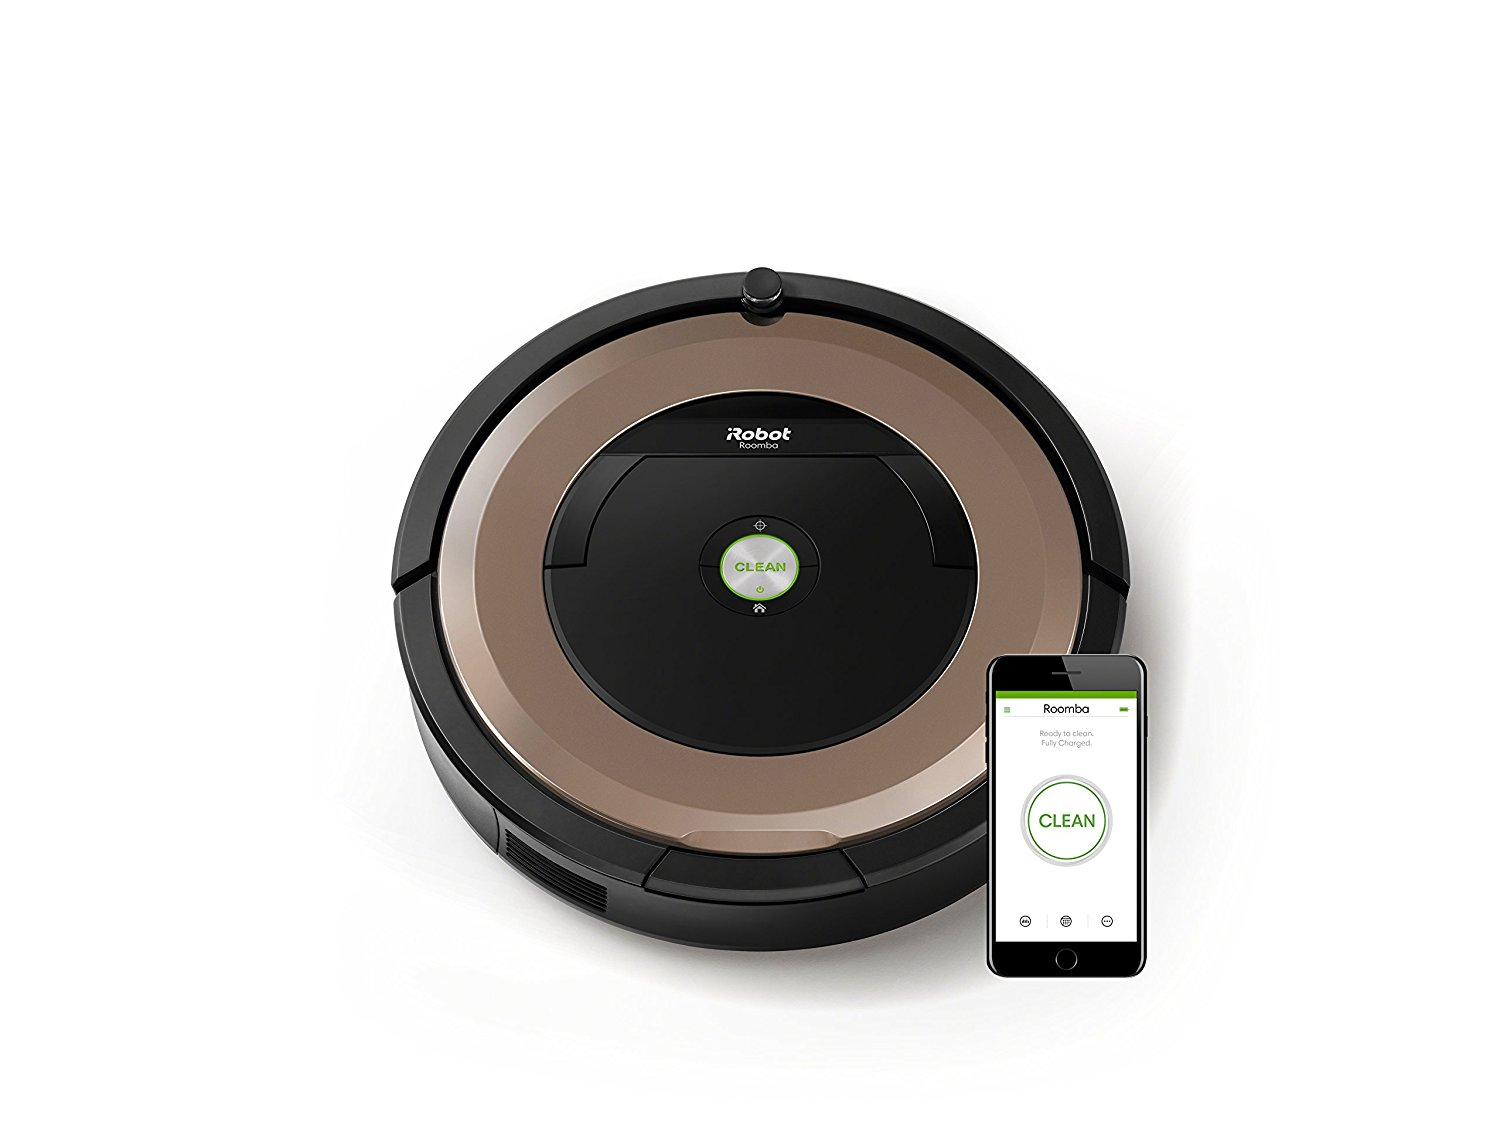 irobot roomba 895 saugroboter f r alle hartb den und teppiche ideal bei tierhaaren wlan f hig. Black Bedroom Furniture Sets. Home Design Ideas